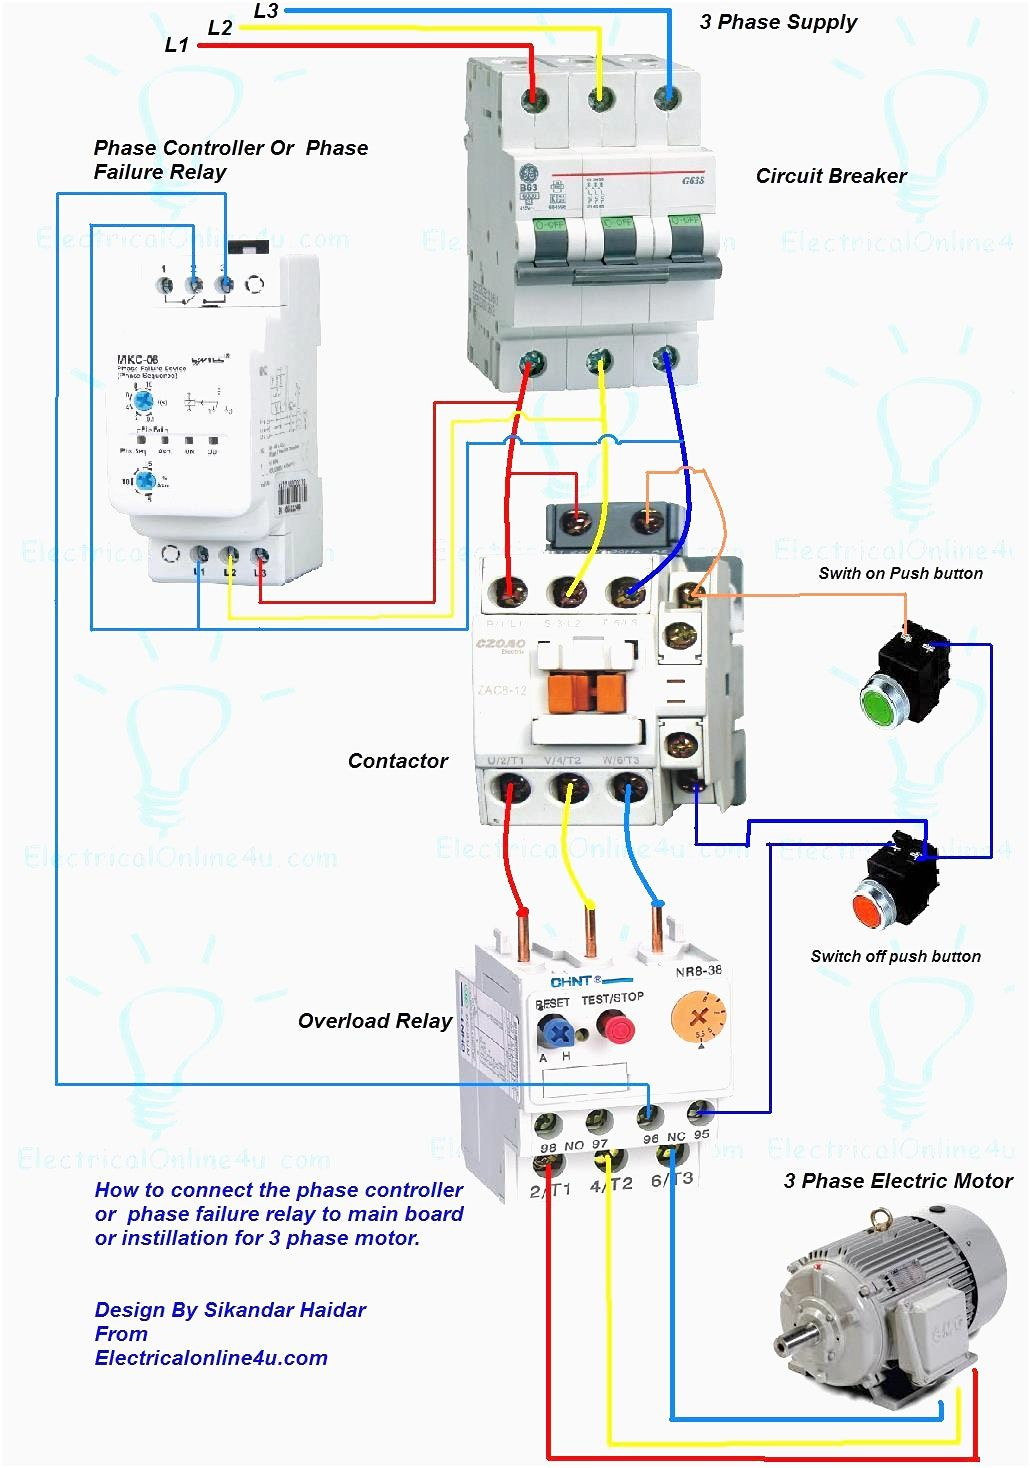 3 phase electrical contactor diagram wiring diagram structure Five Electrical Contactor Diagram